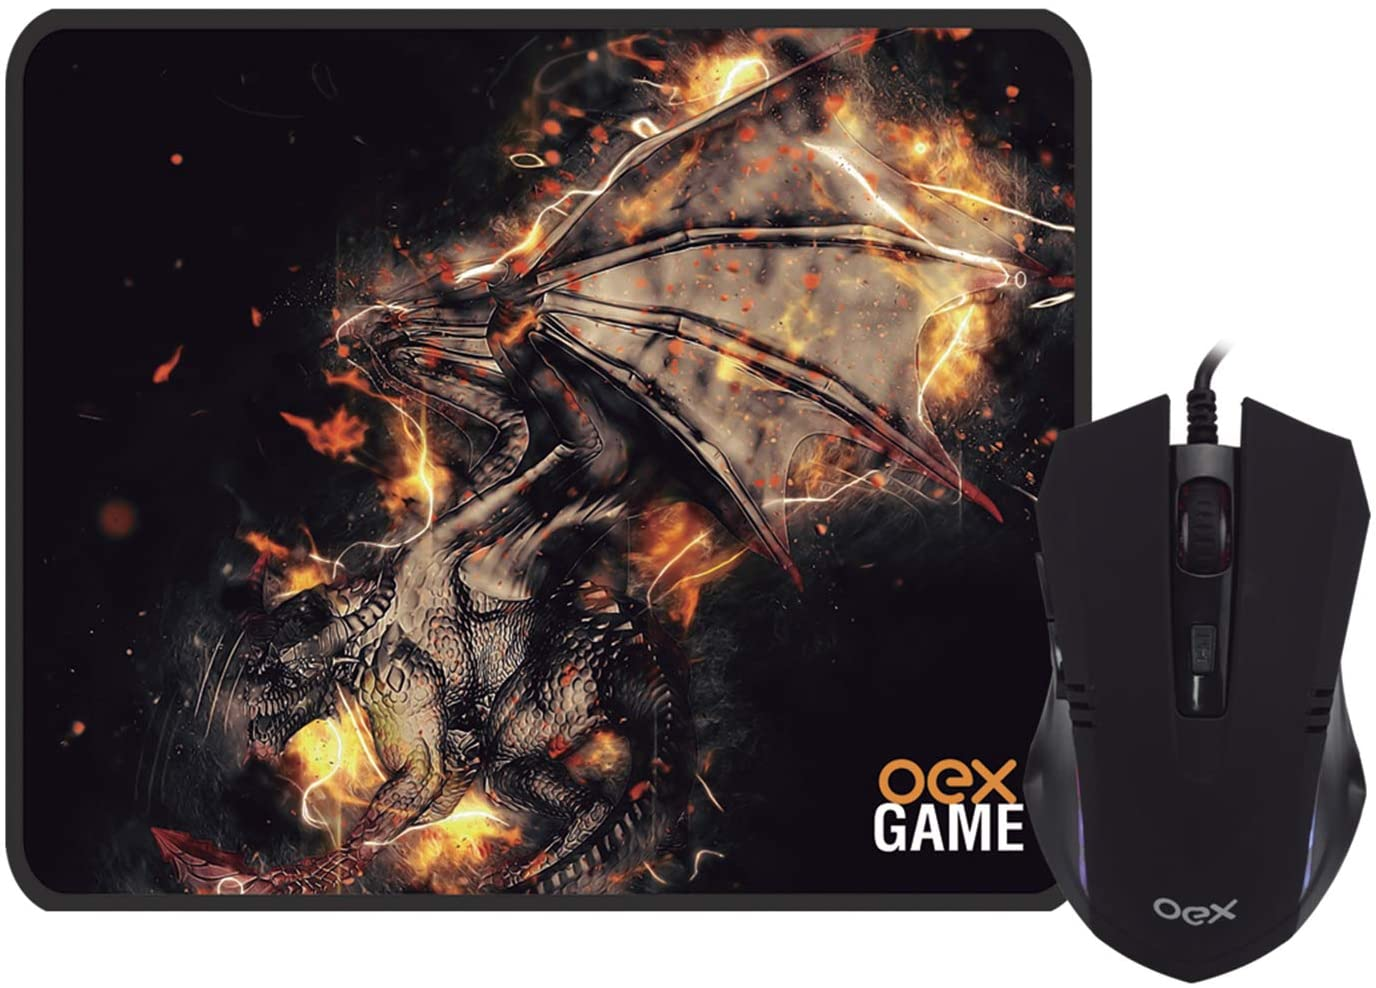 COMBO ARENA MOUSE GAMER 2400 DPI + MOUSE PAD OEX MC102